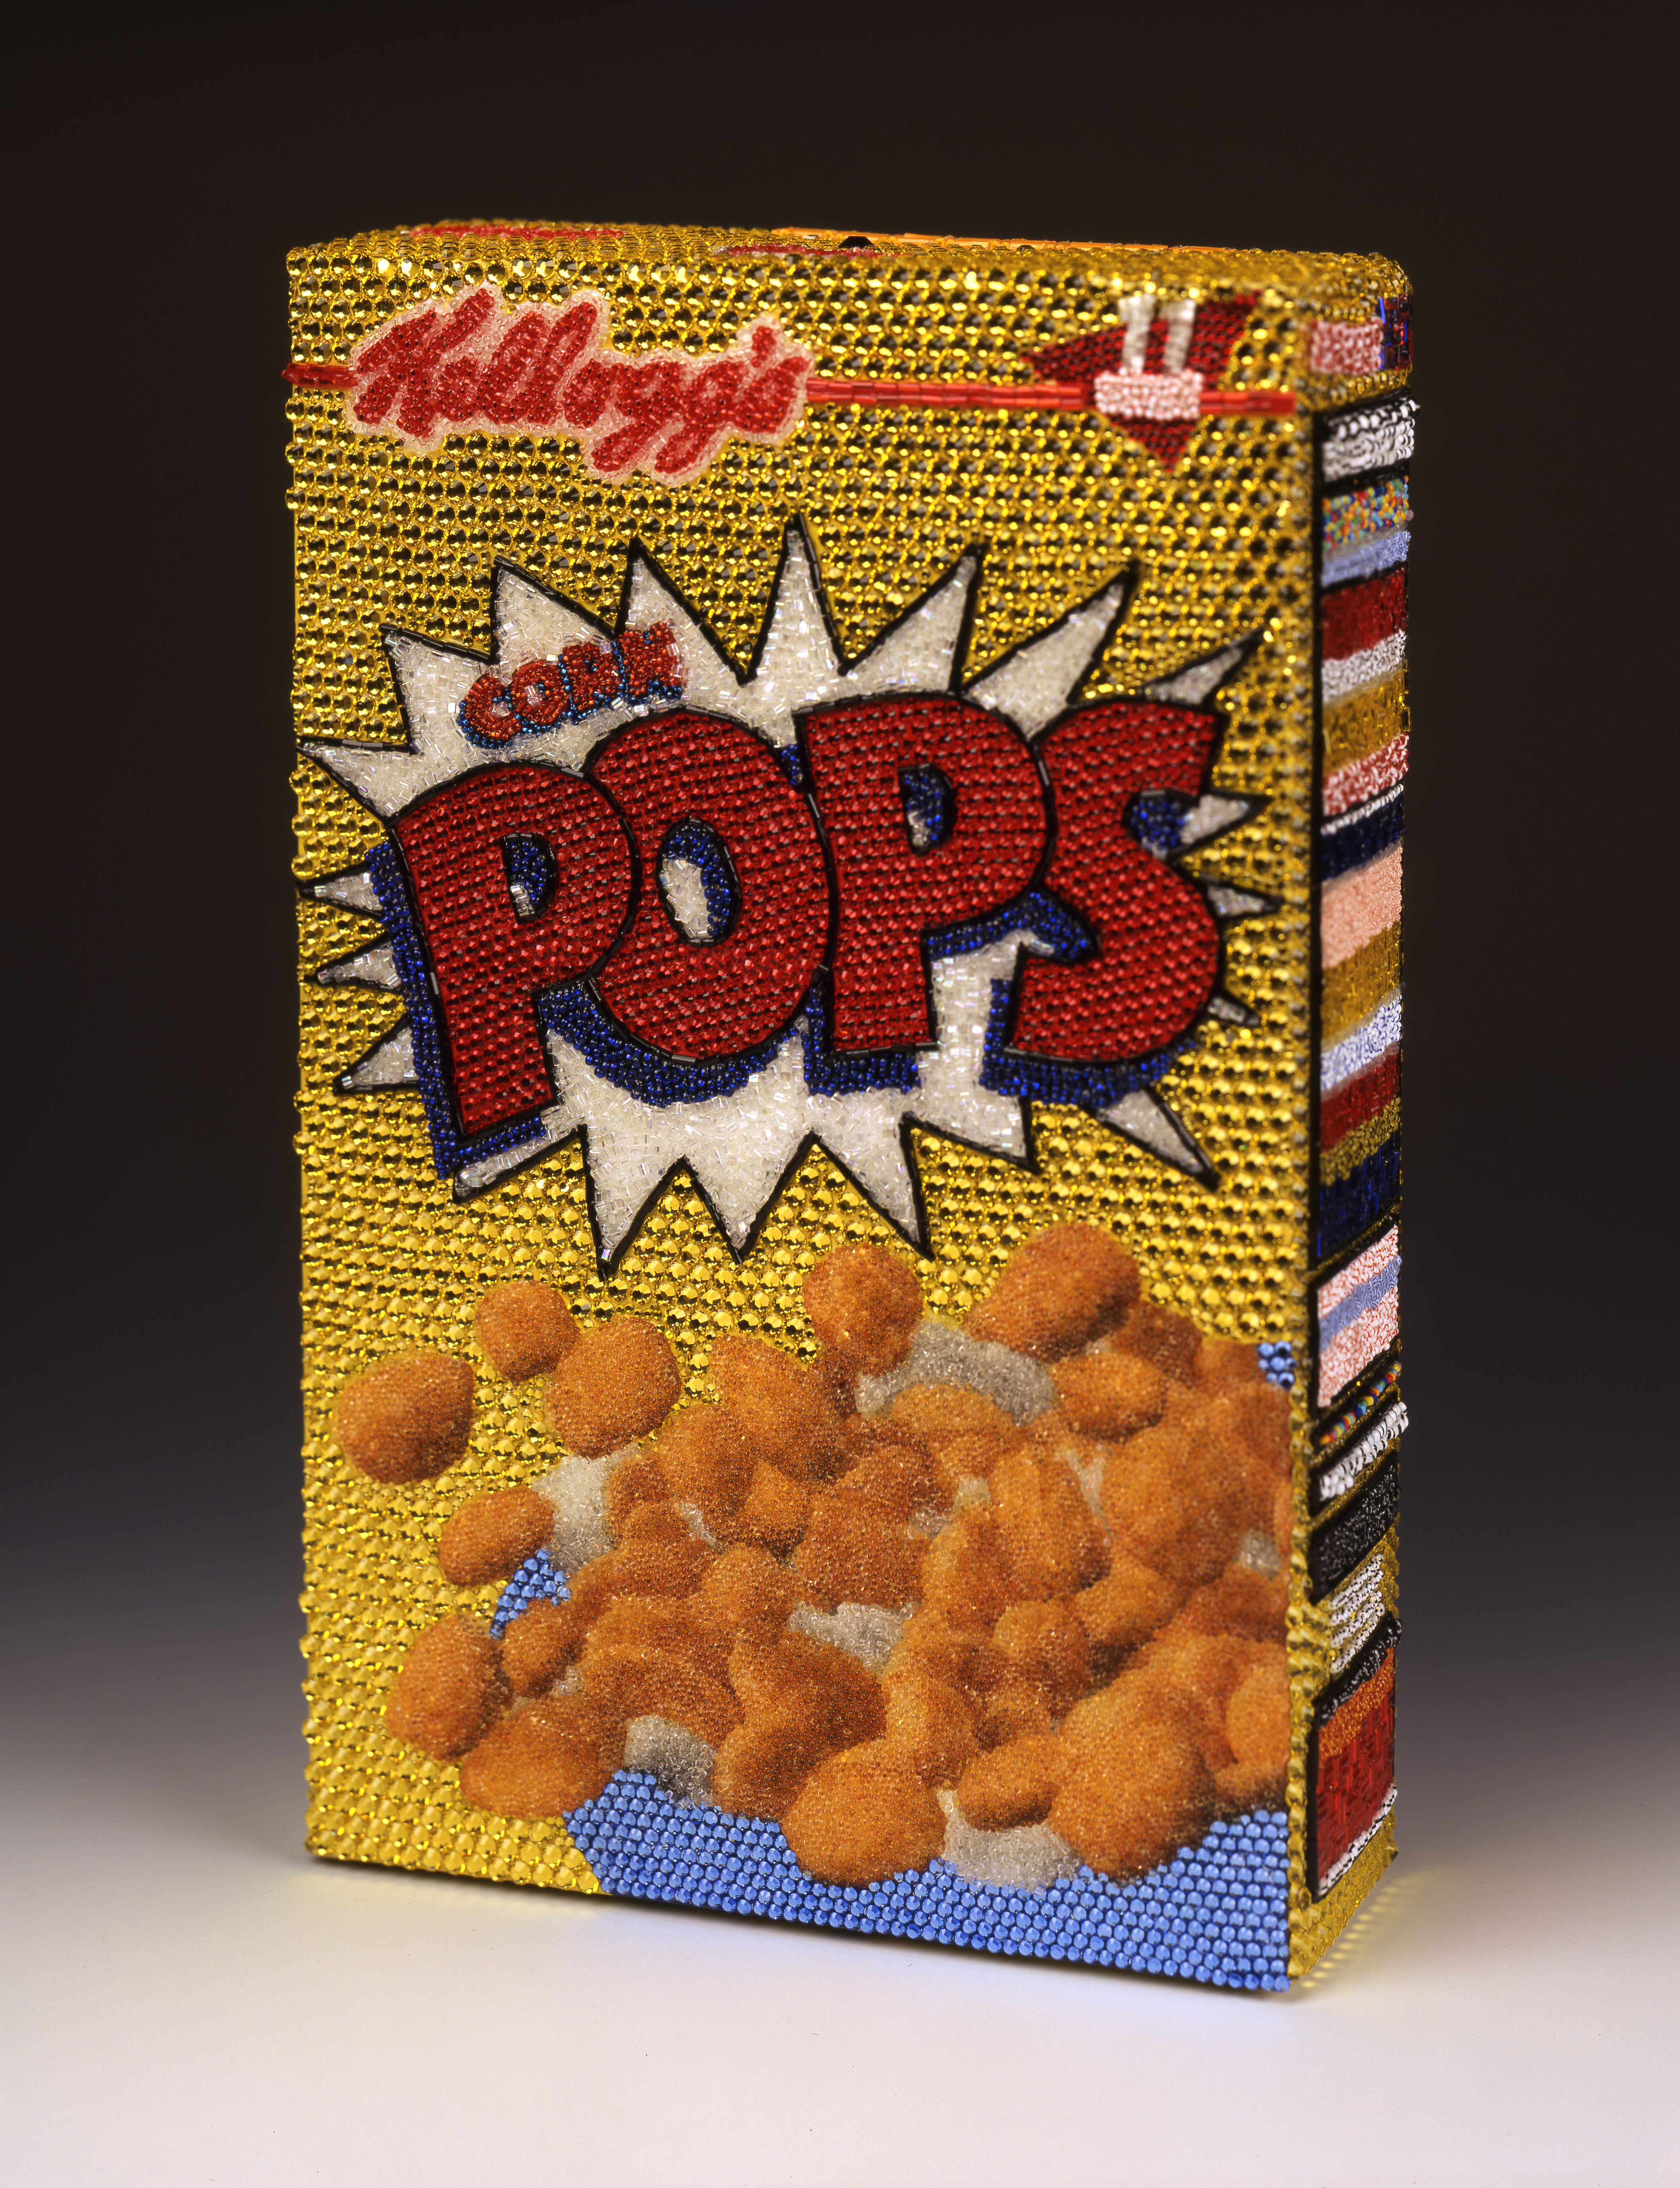 Kellogg's Corn Pops Cereal Linda Dolack Food Sculpture Glass Beads Swarovski Rhinestones Hand Applied Mixed Media Art